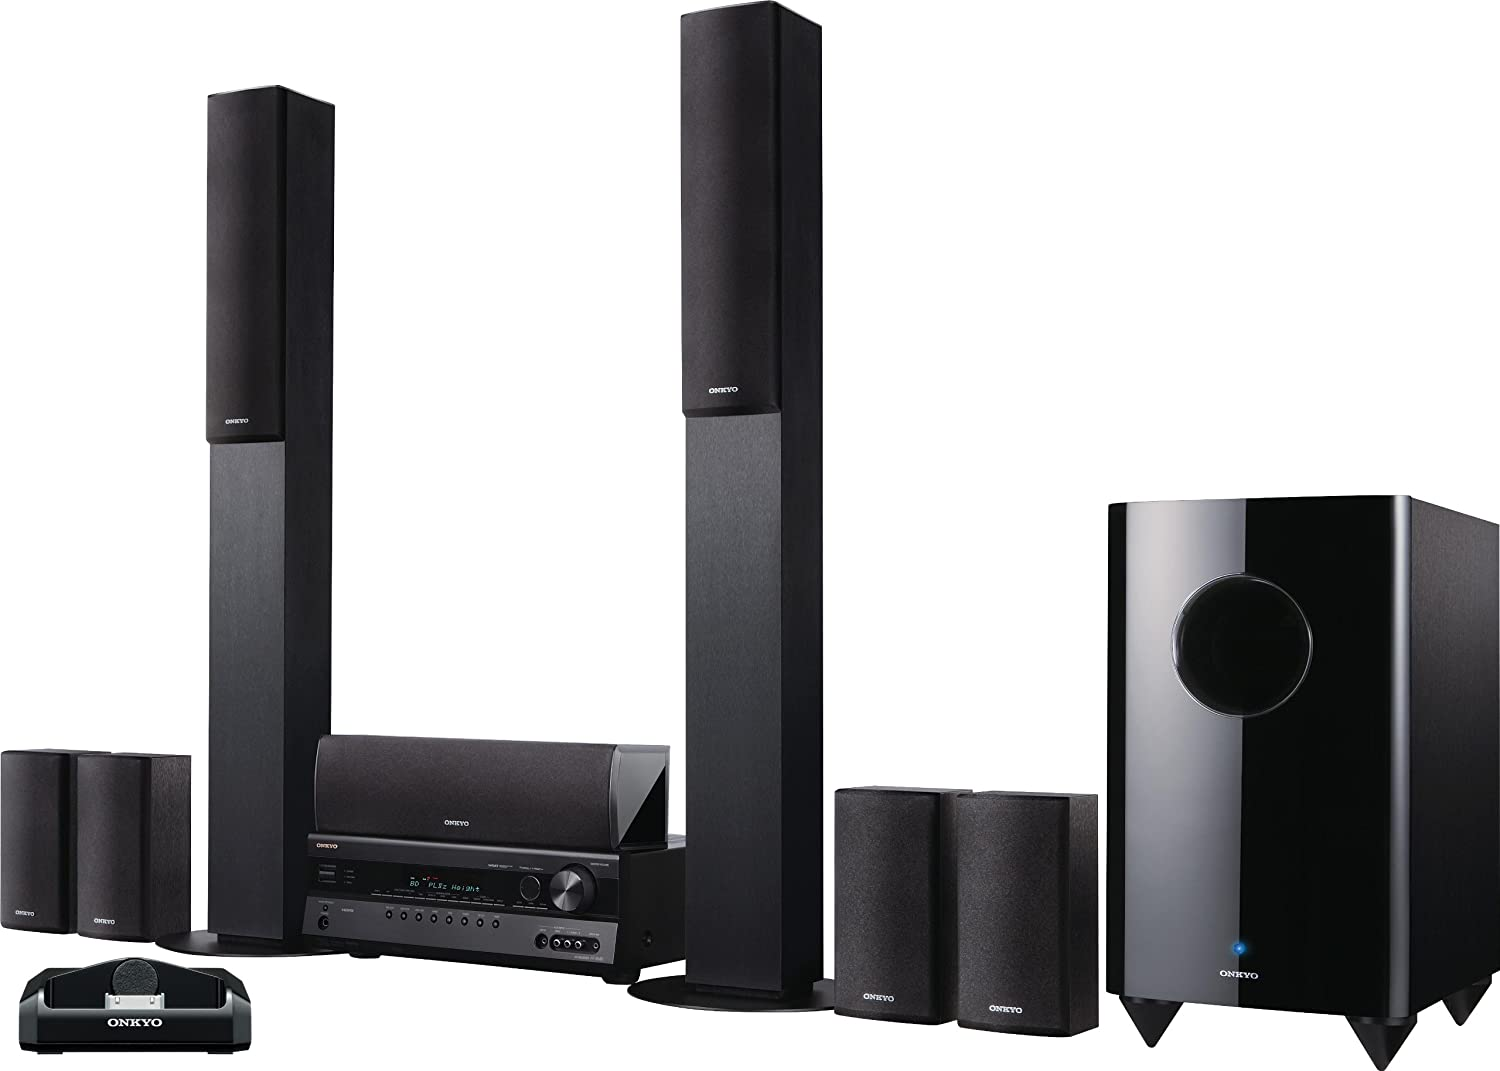 Onkyo HT-S7300 7 1-Channel Home Theater Receiver and Speaker